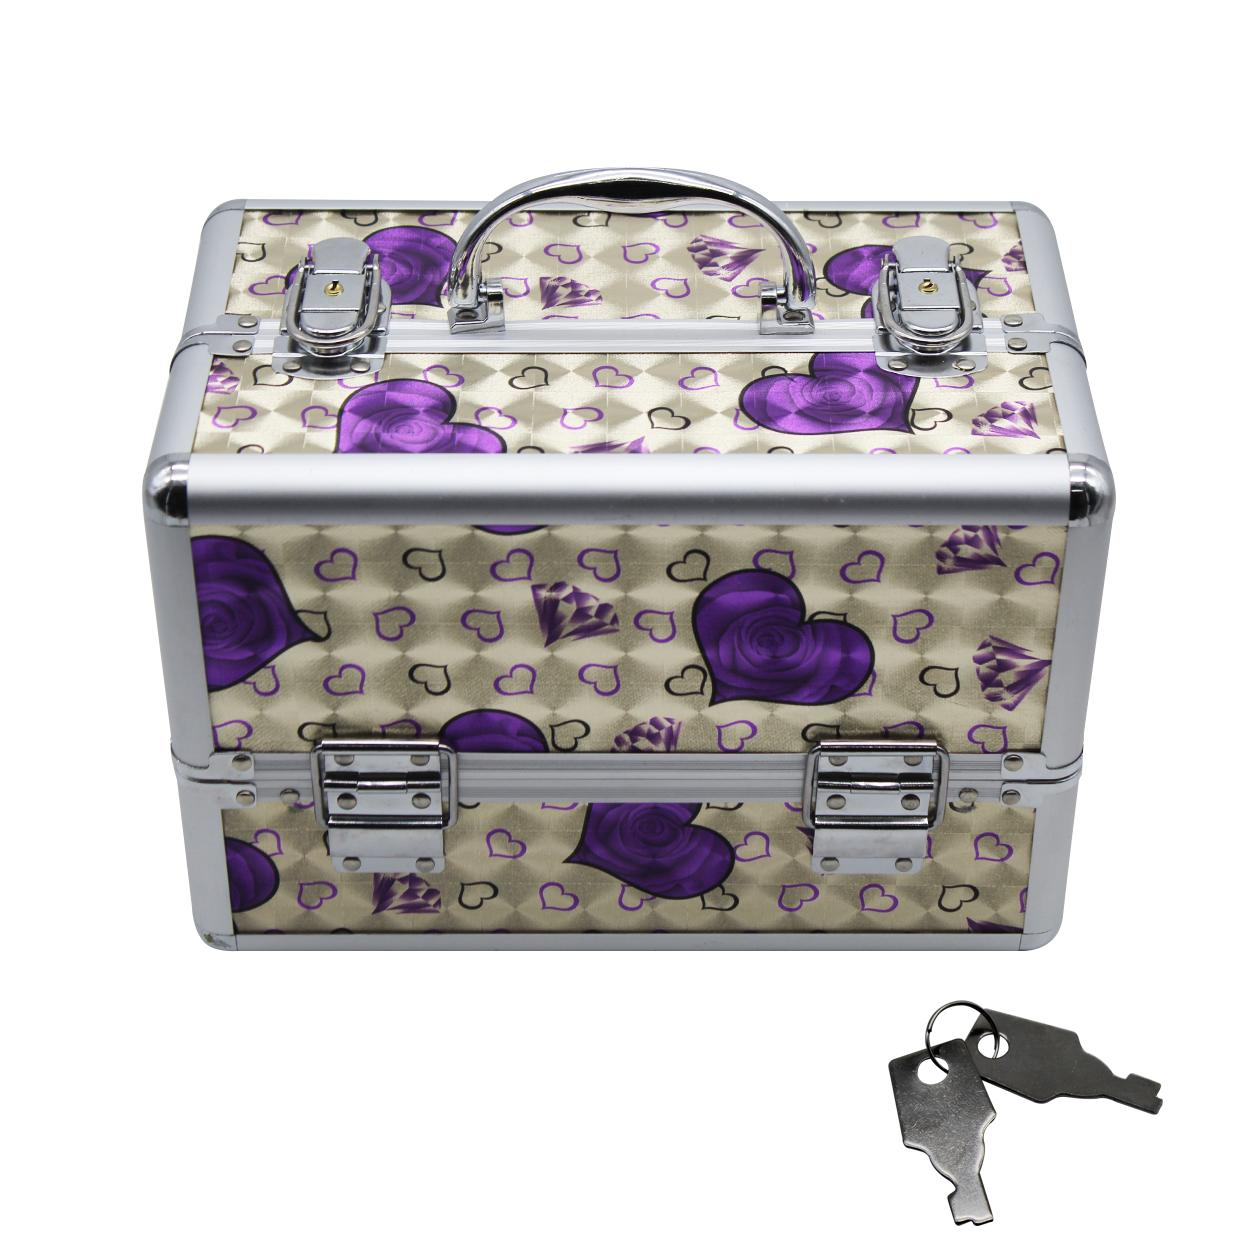 Professional Aluminum Makeup Case With Design (Purple Heart) Philippines